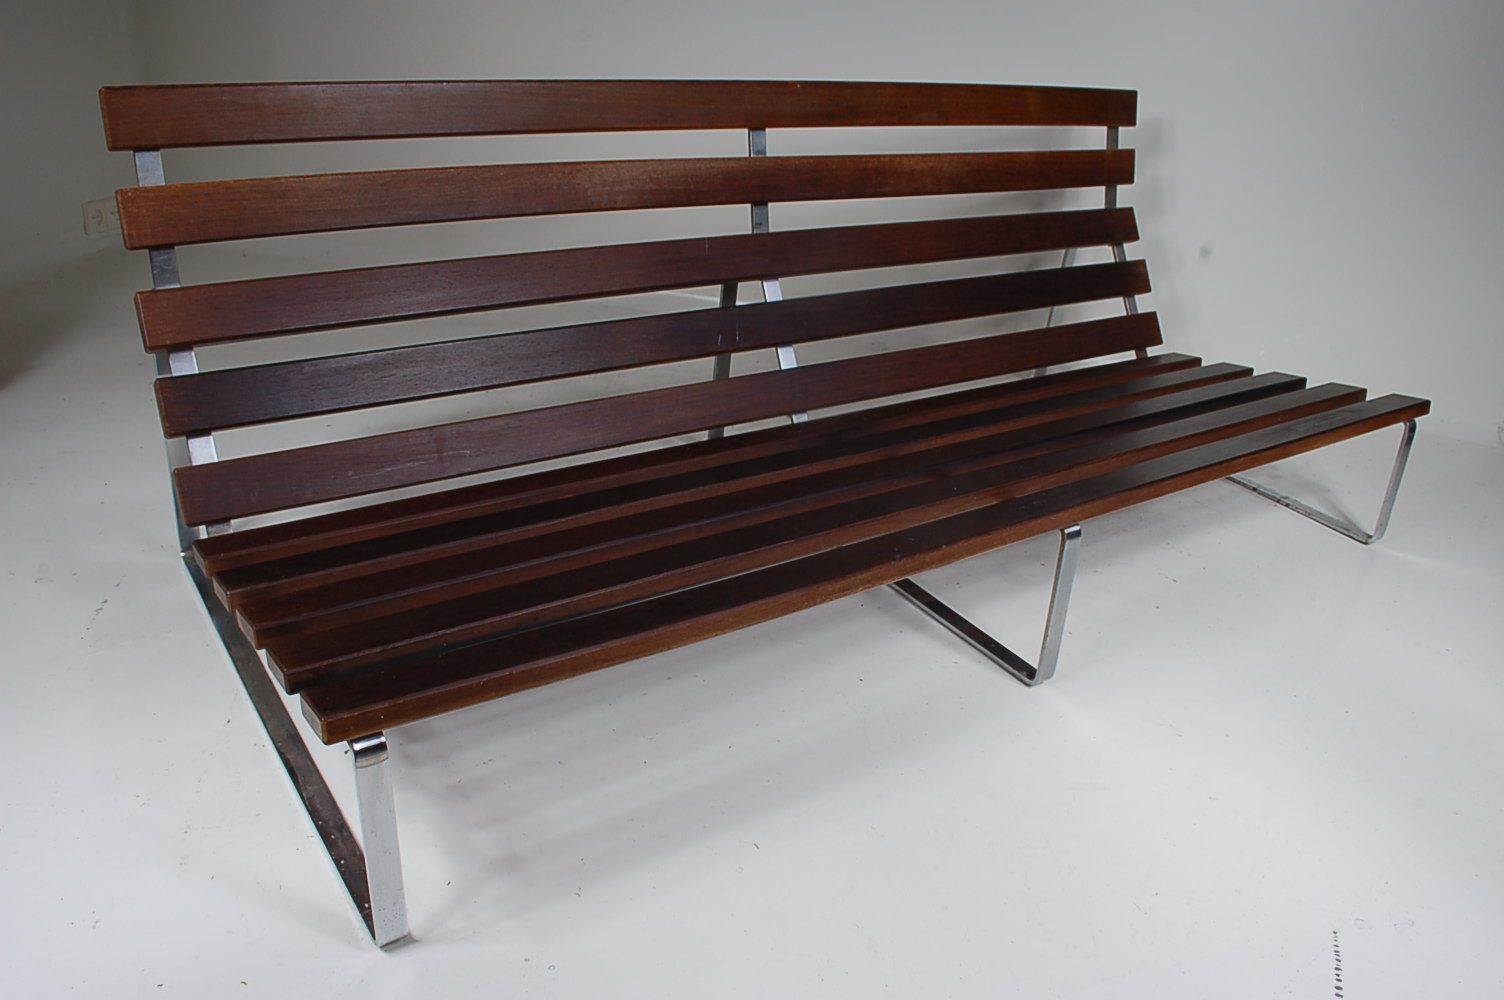 3 Seater Chrome Metal Bench By Kho Liang Ie For Artifort 1960s For Sale At Pamono